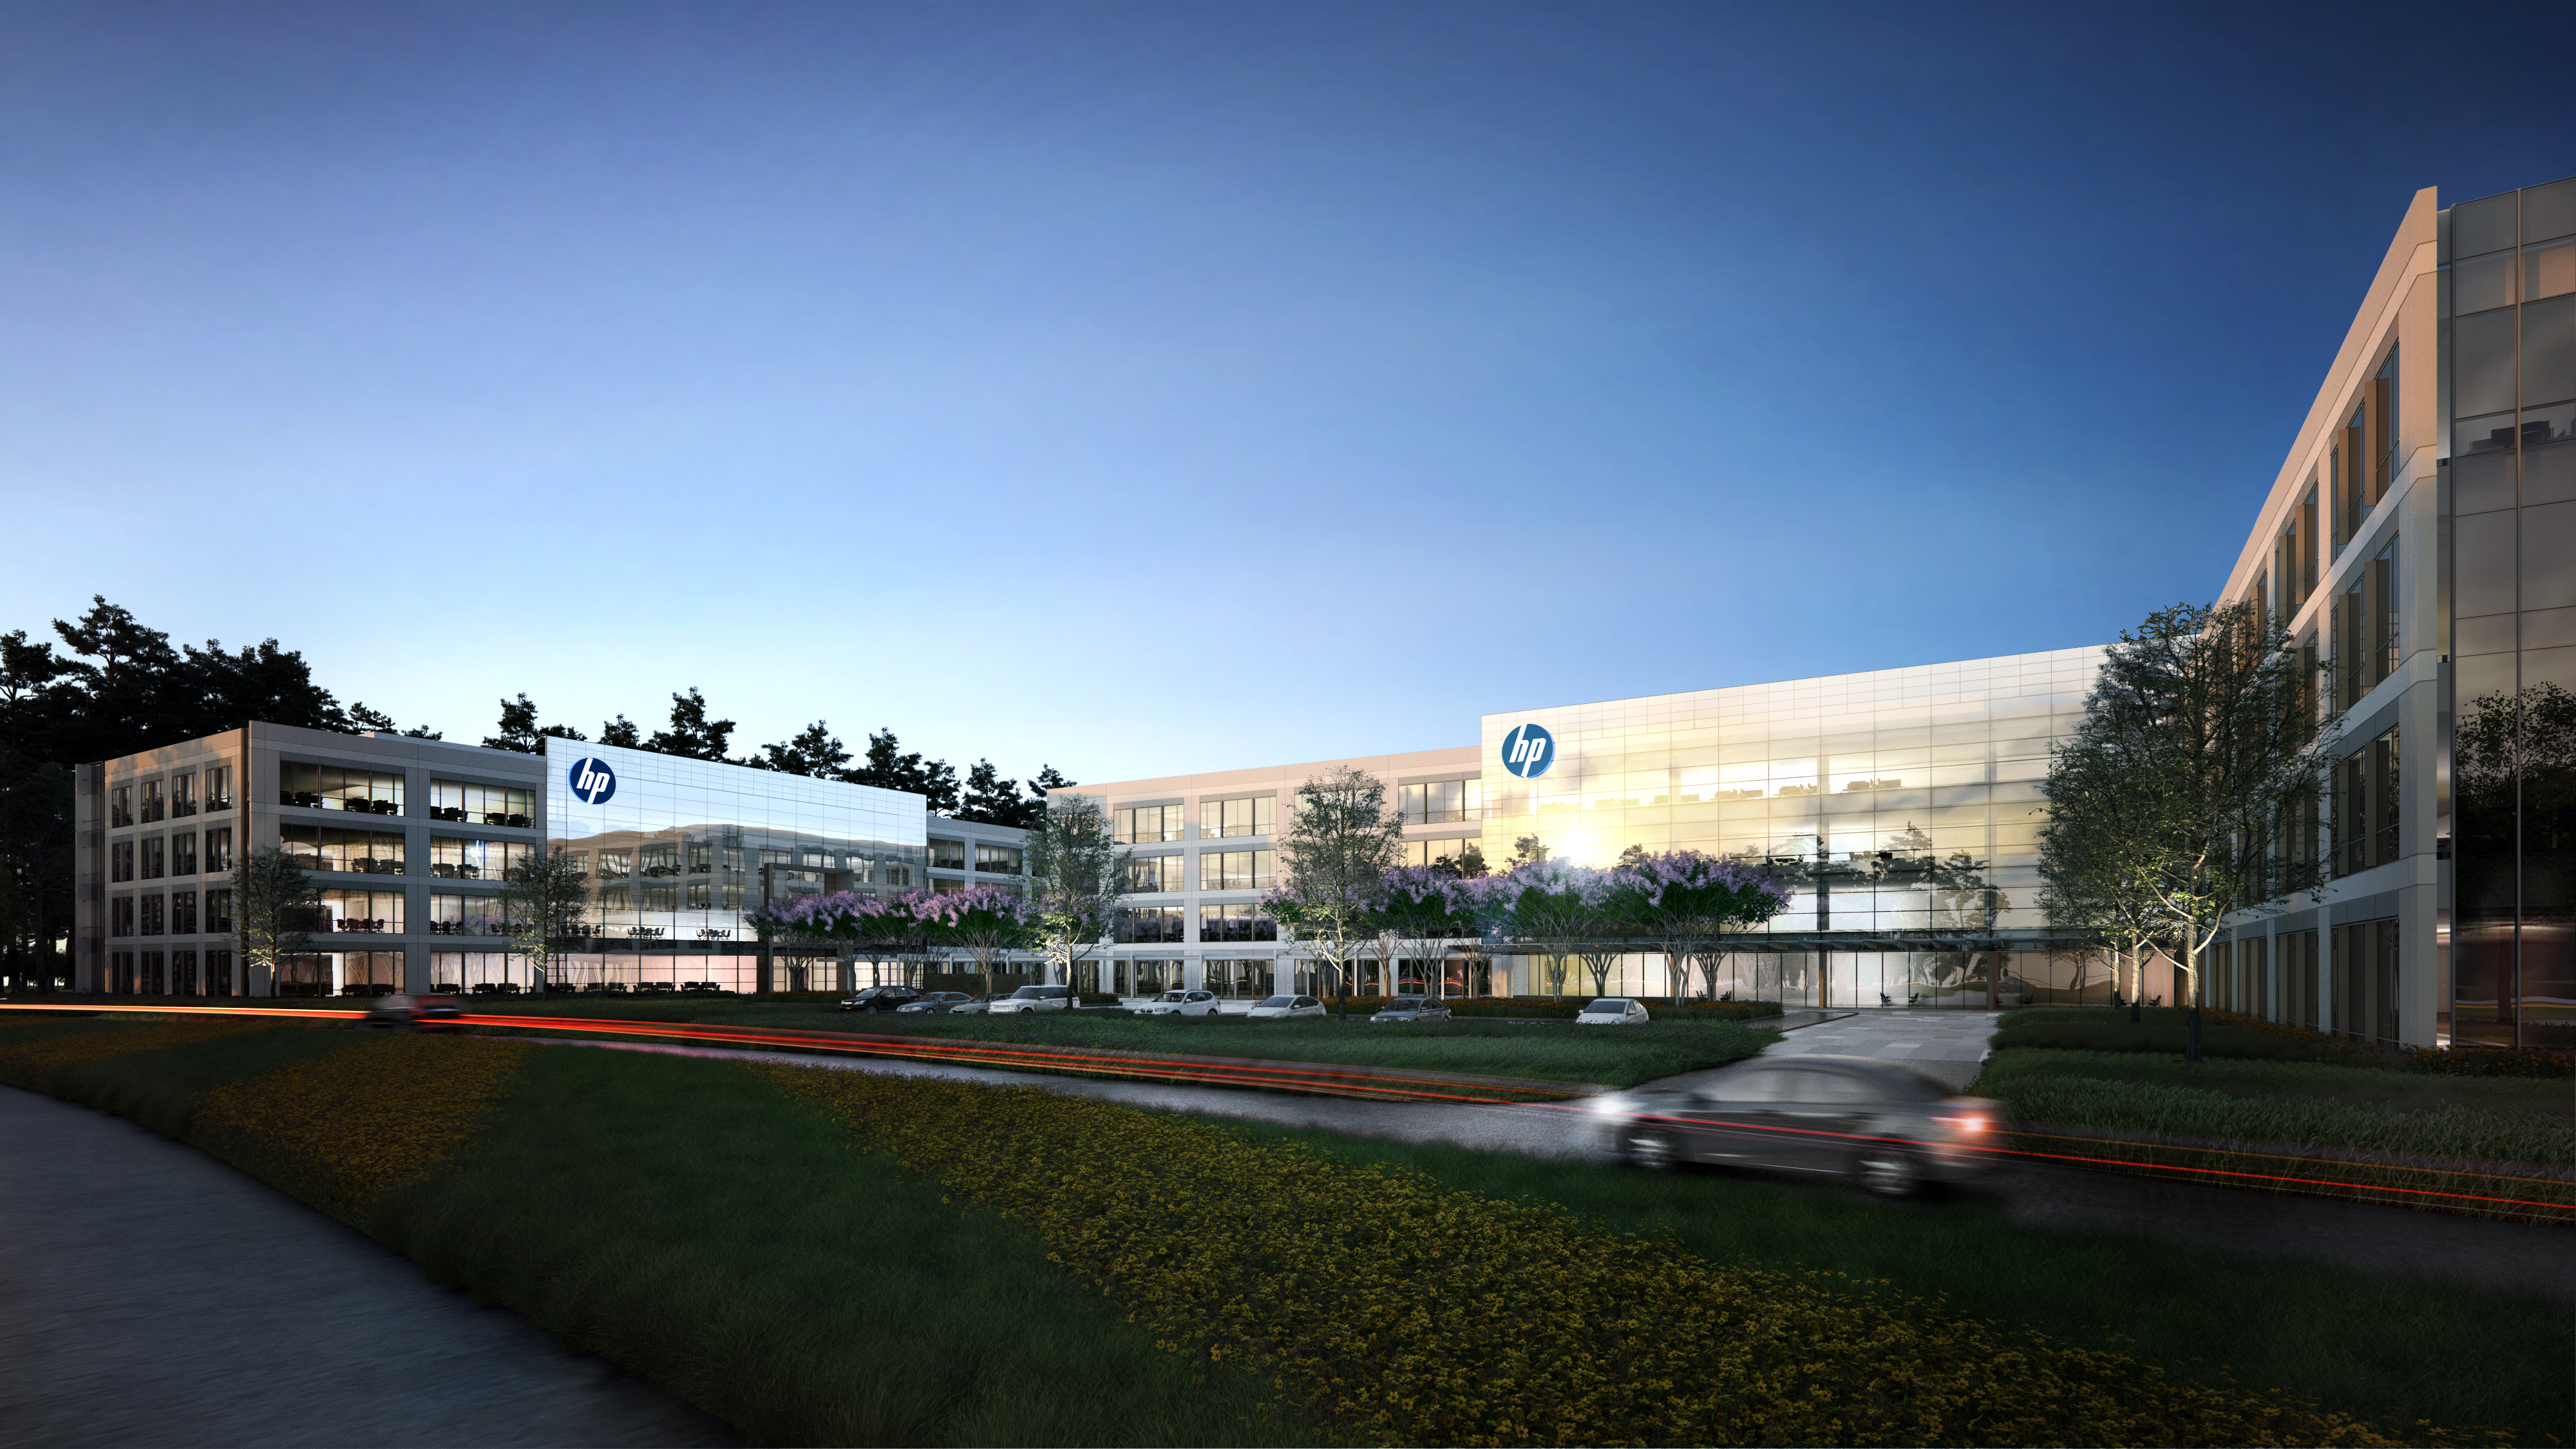 New office announced for Springwoods Village - HP Inc  moving to new